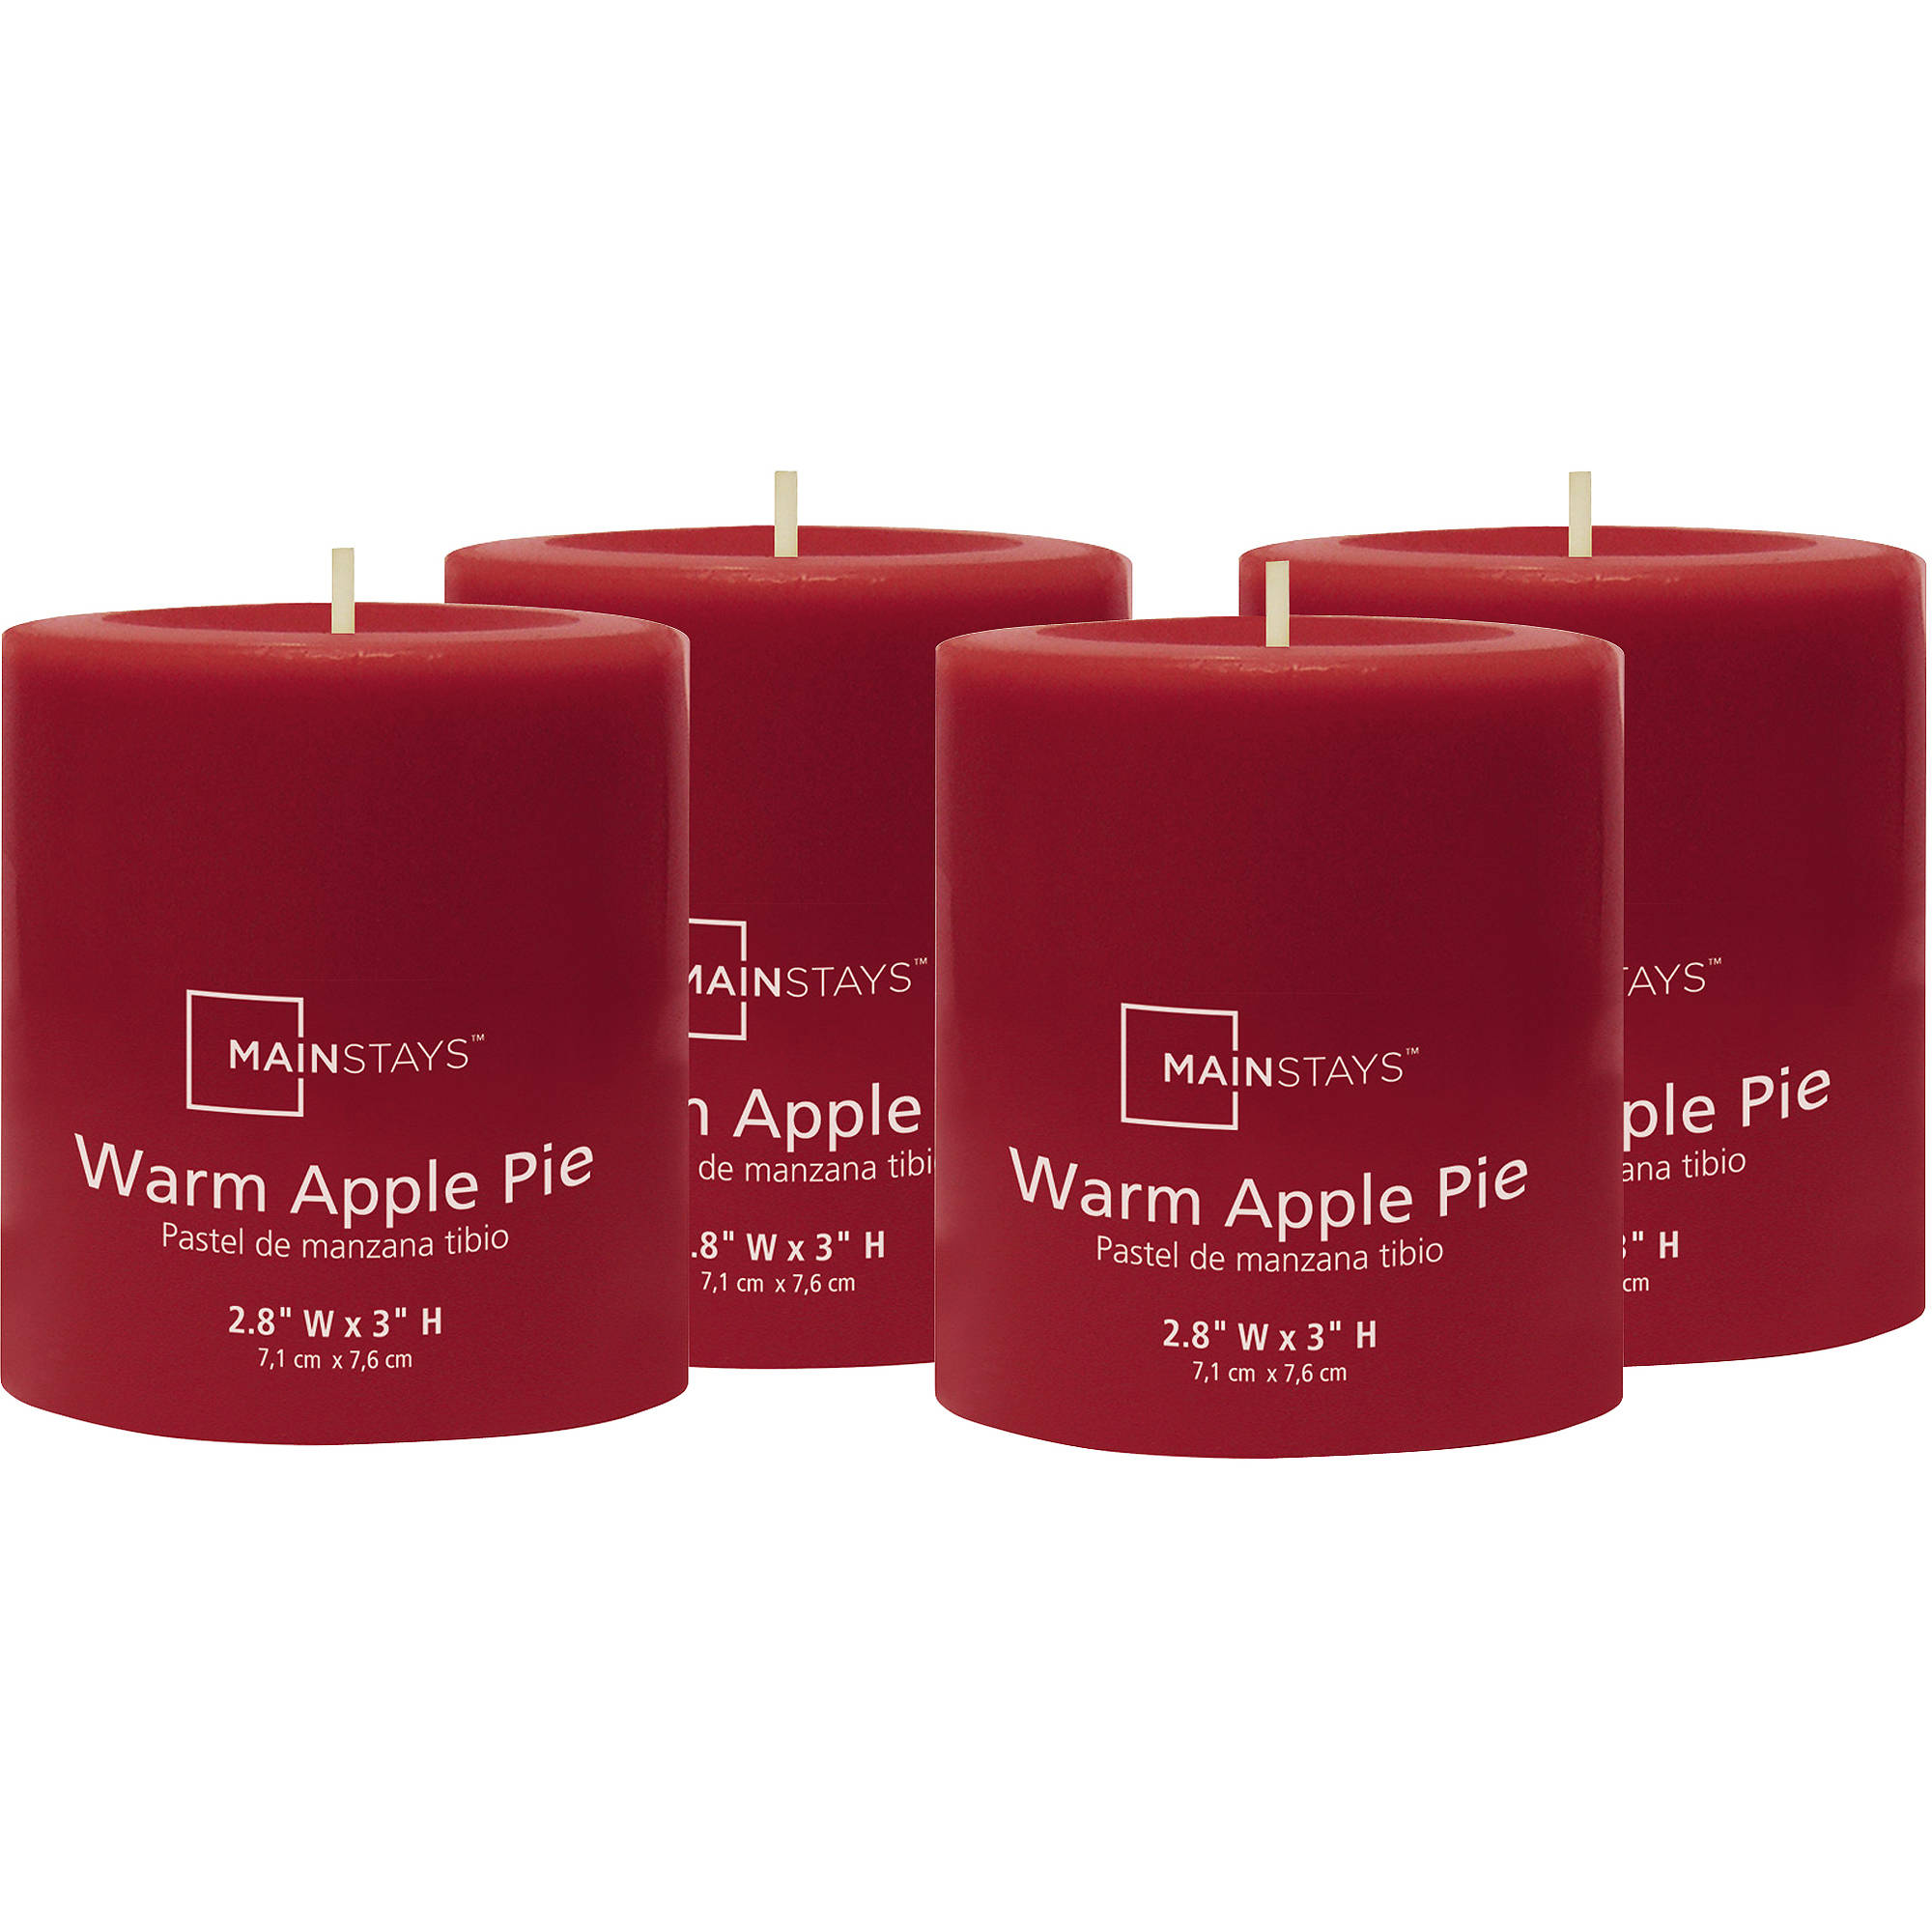 "Mainstays 3"" Pillar Warm Apple Pie Scented Candle, Set of 4"